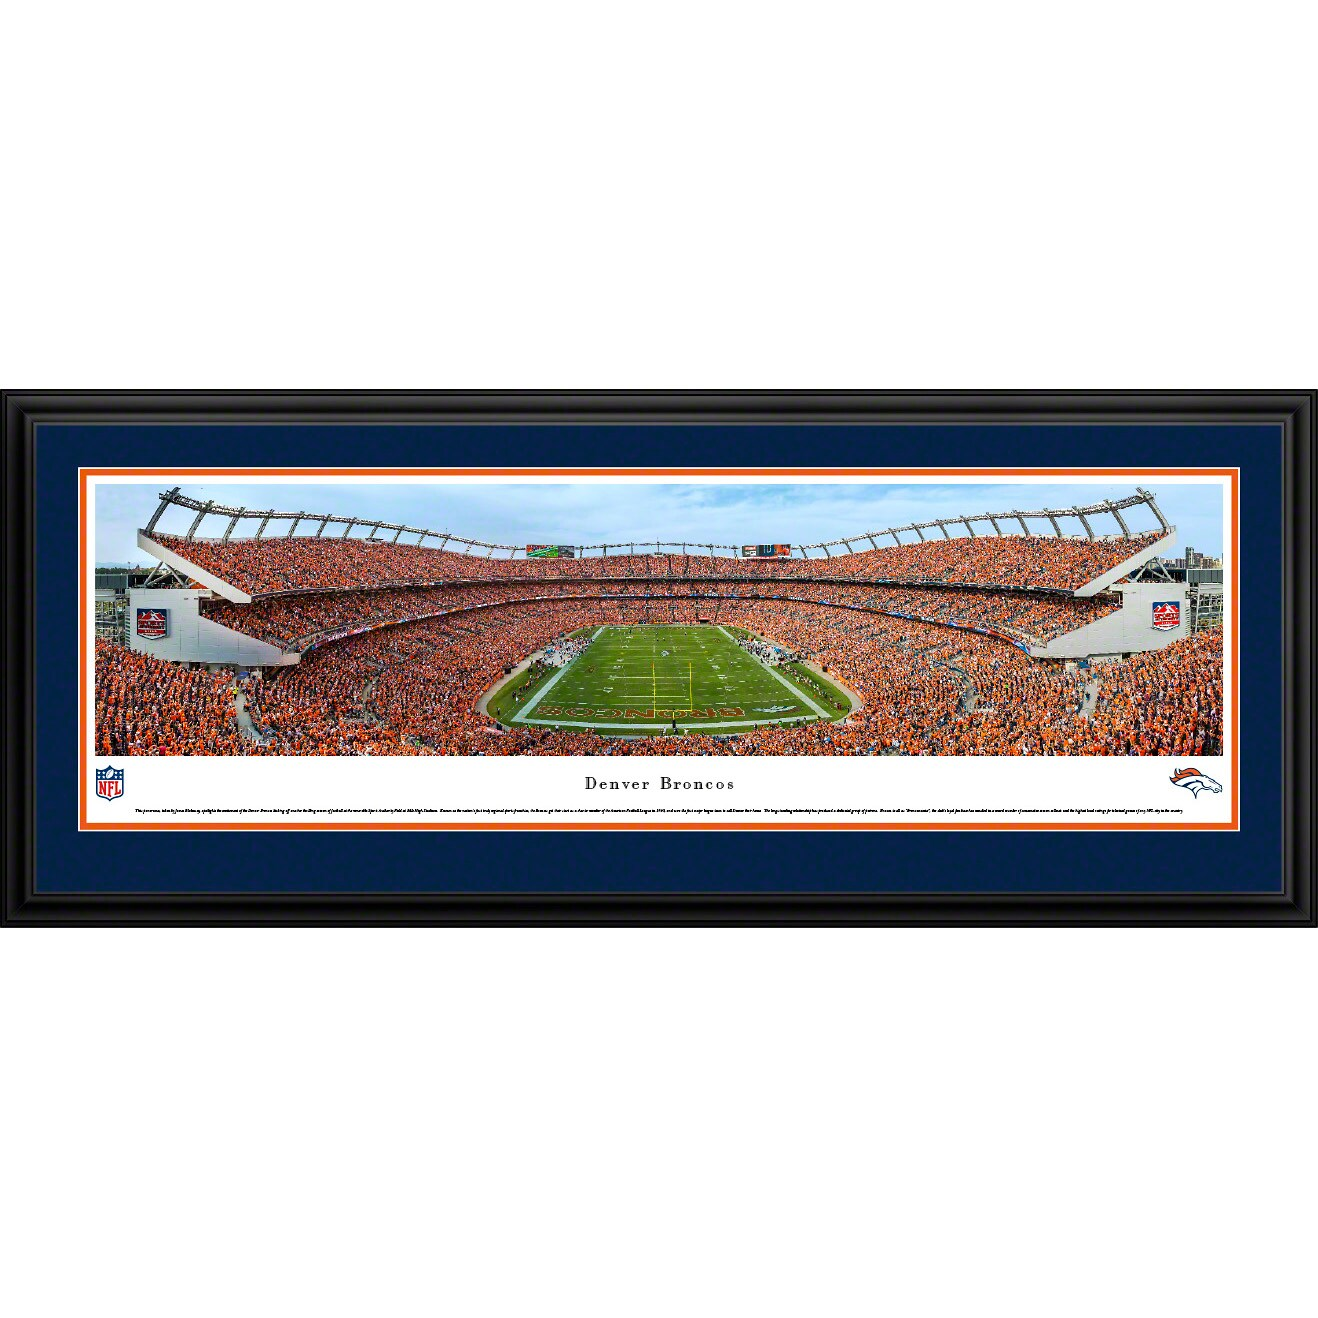 "Denver Broncos 18"" x 44"" Deluxe Frame Stadium Panoramic Photo"